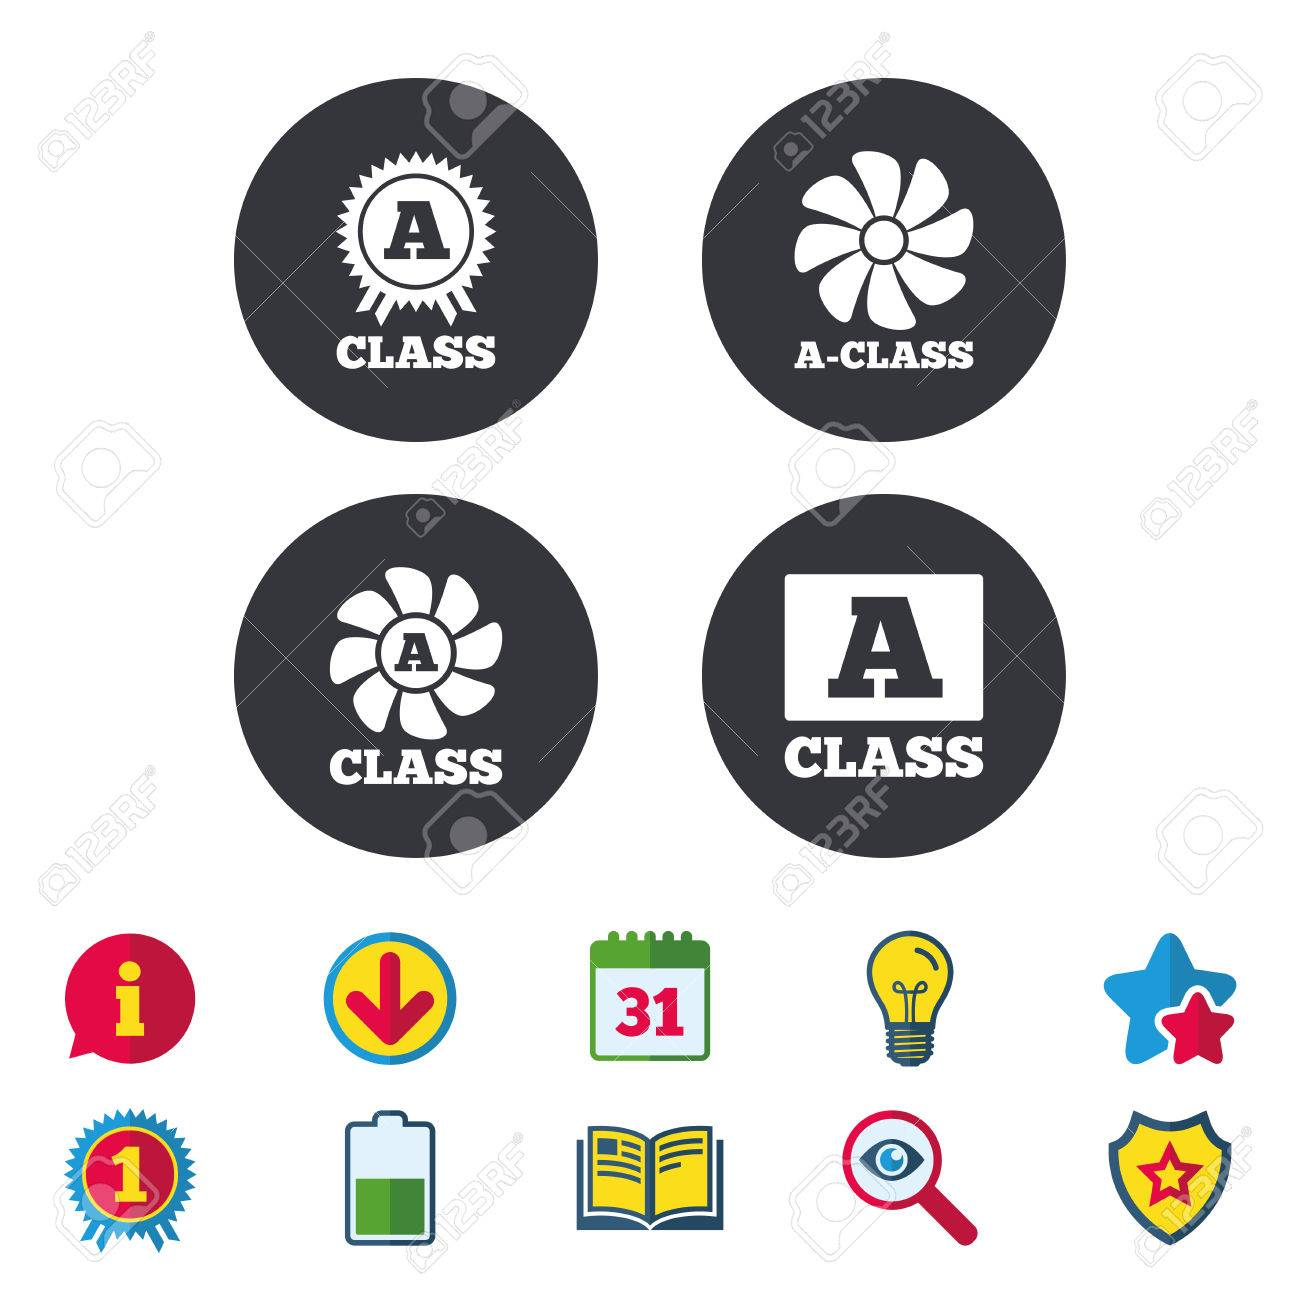 A Class Award Icon Premium Level Symbols Calendar Information And